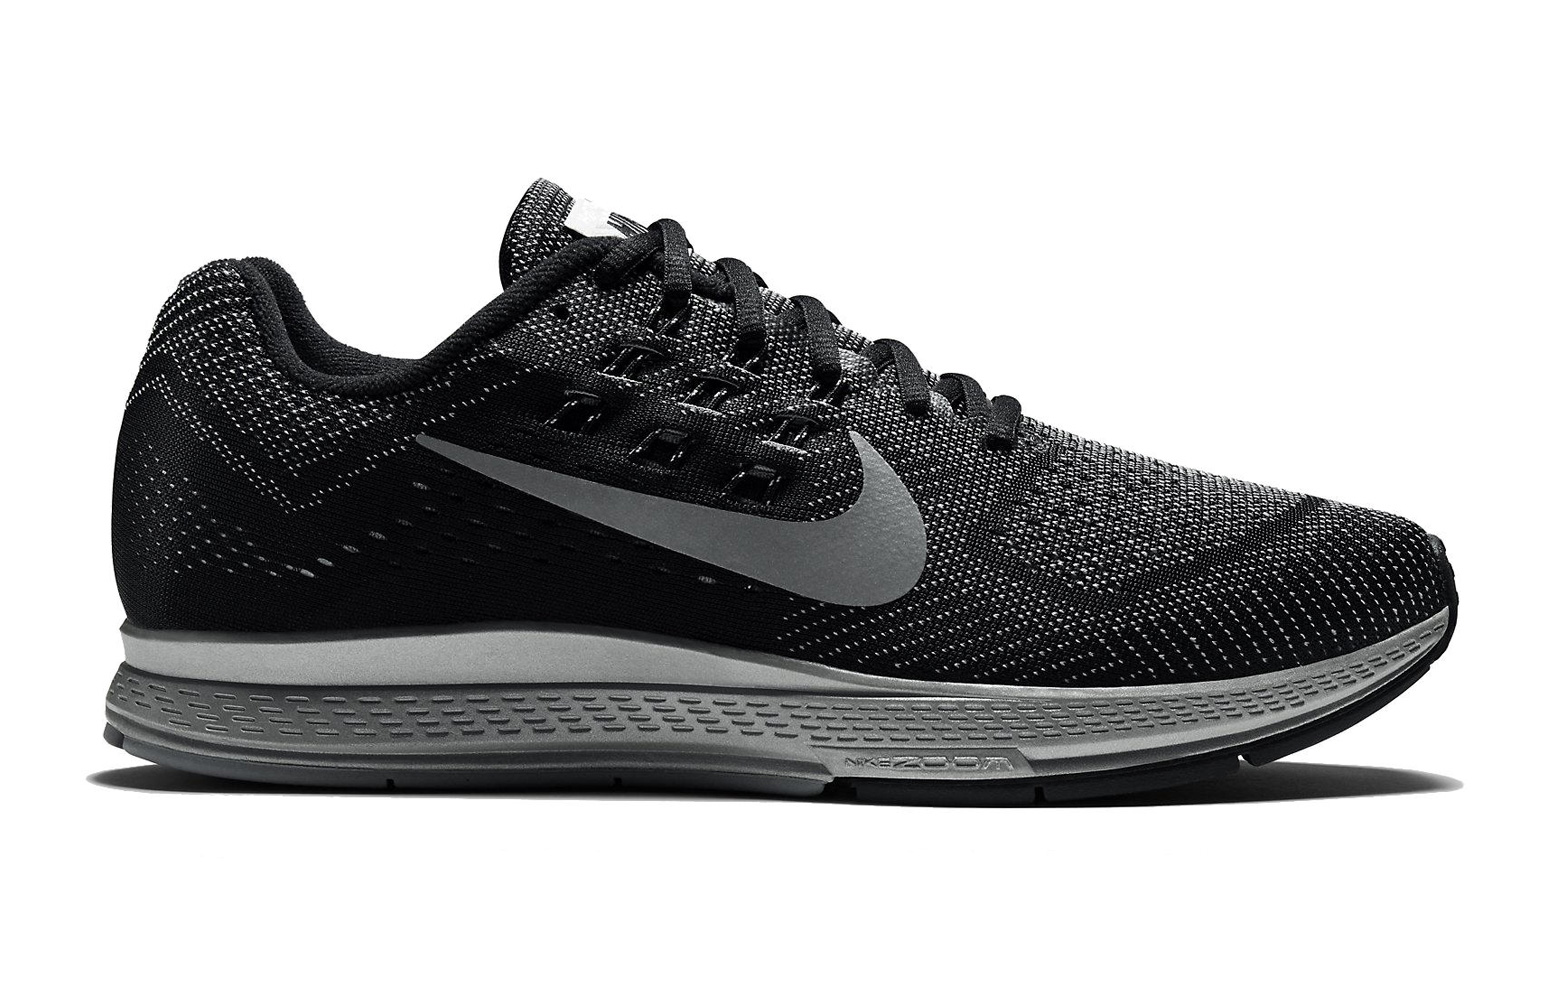 taille 40 3ad48 9c654 NIKE Chaussure ZOOM STRUCTURE+ 18 Noir Flash Homme